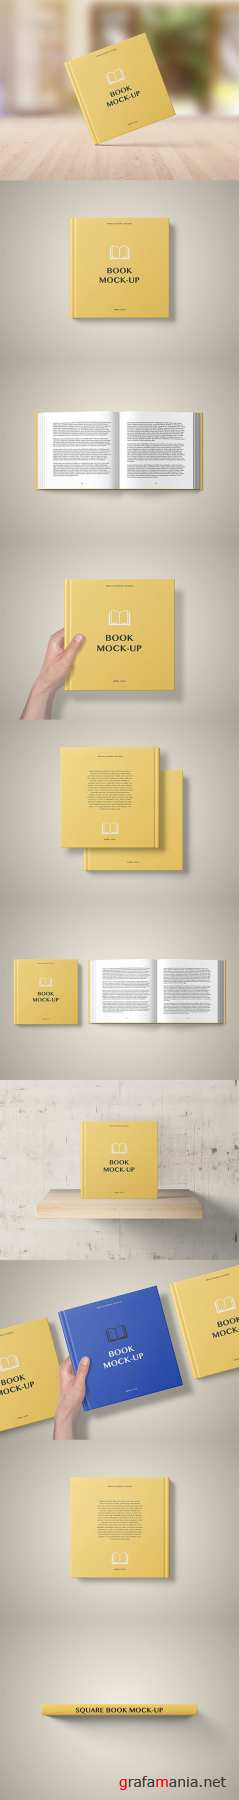 Hard Cover Square Book Mockup - Set 2